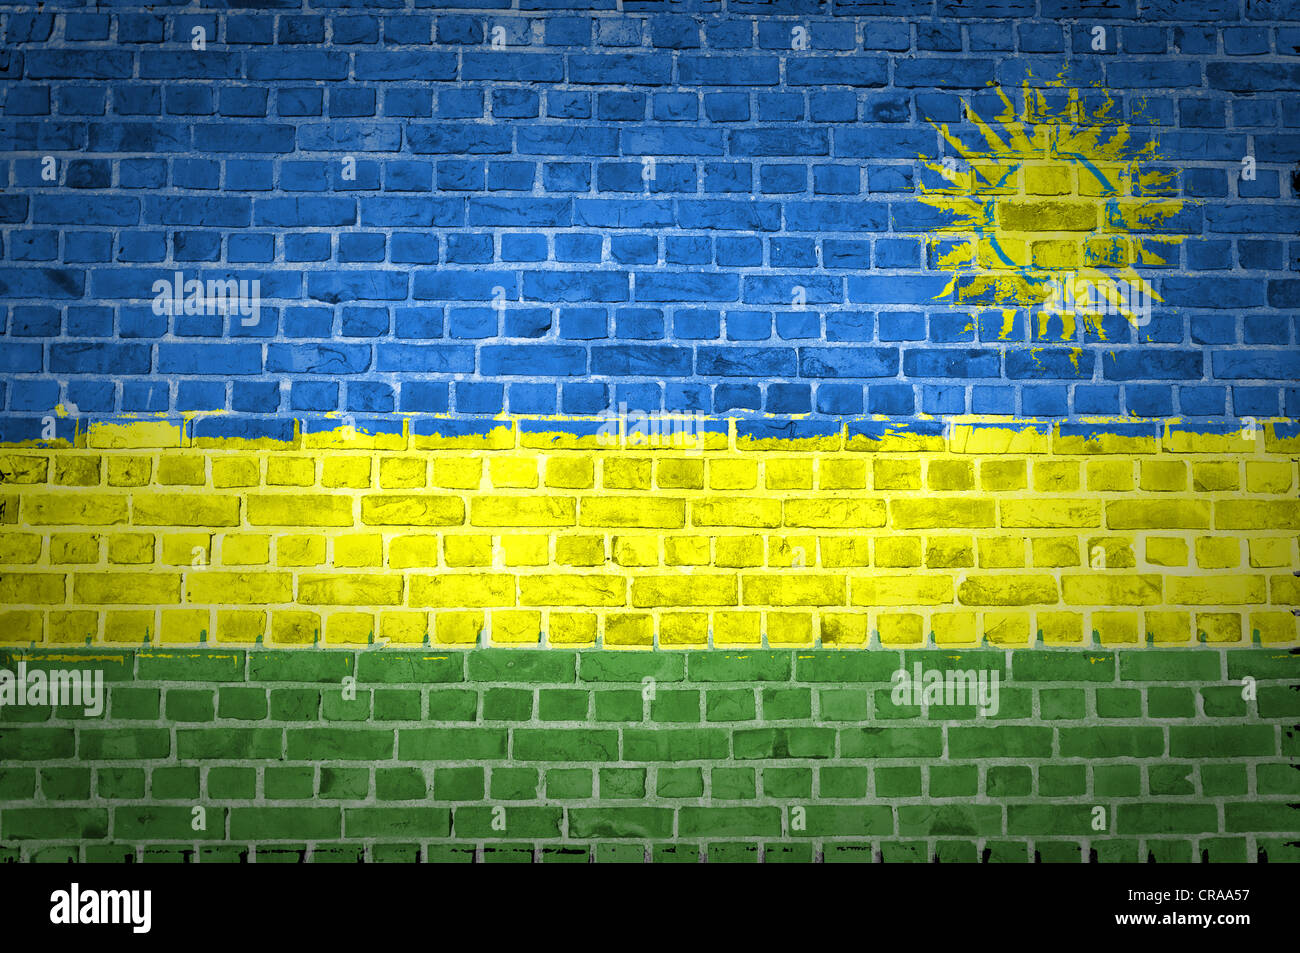 An image of the Rwanda flag painted on a brick wall in an urban location - Stock Image